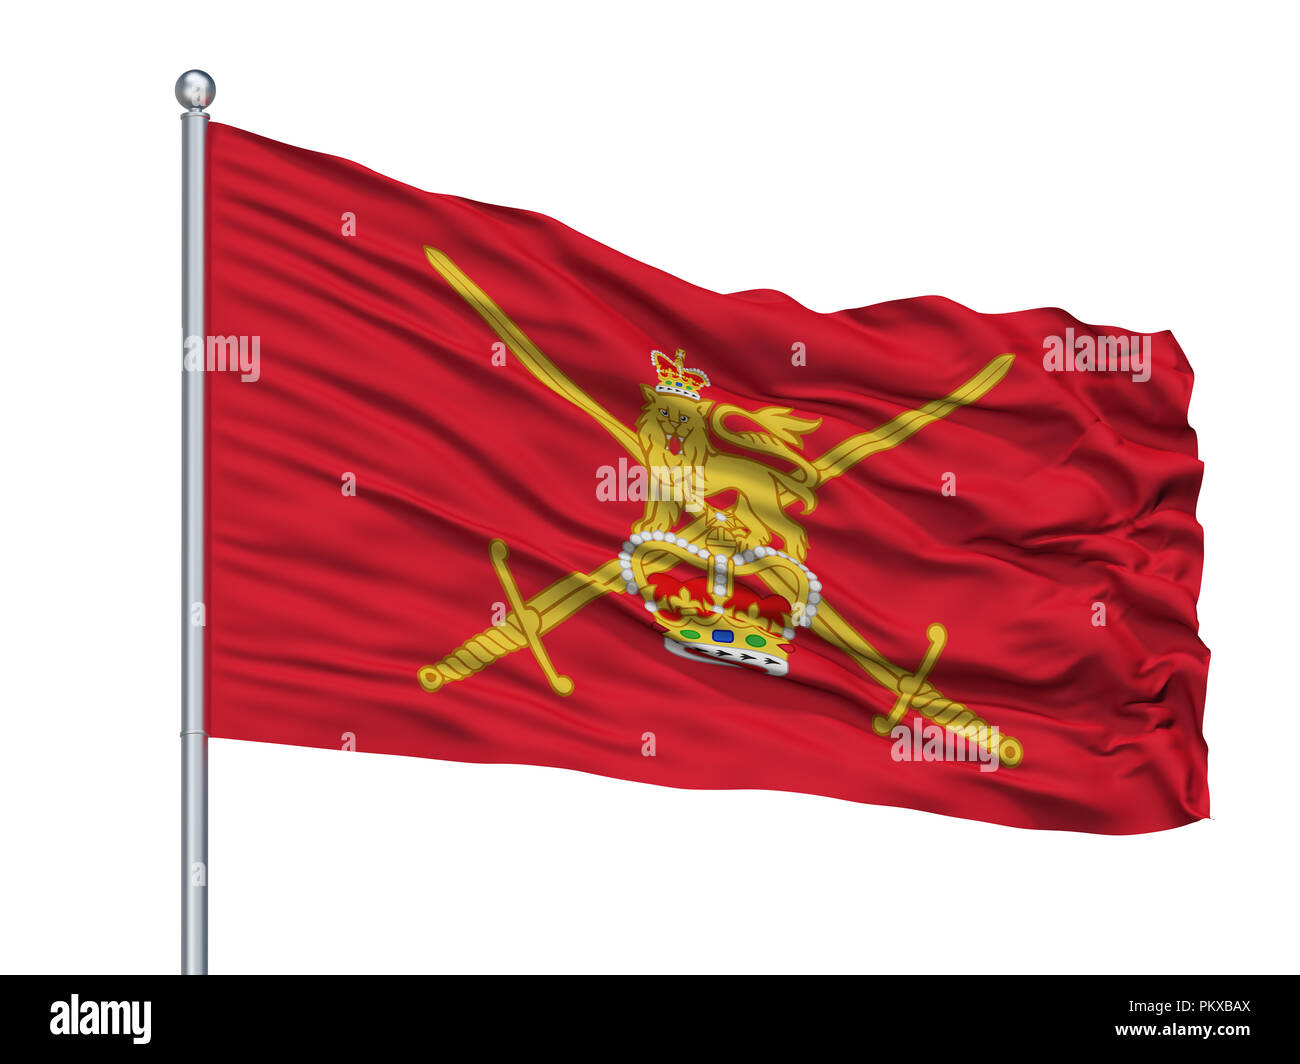 British Army 1938 Flag On Flagpole, Isolated On White Background, 3D Rendering - Stock Image